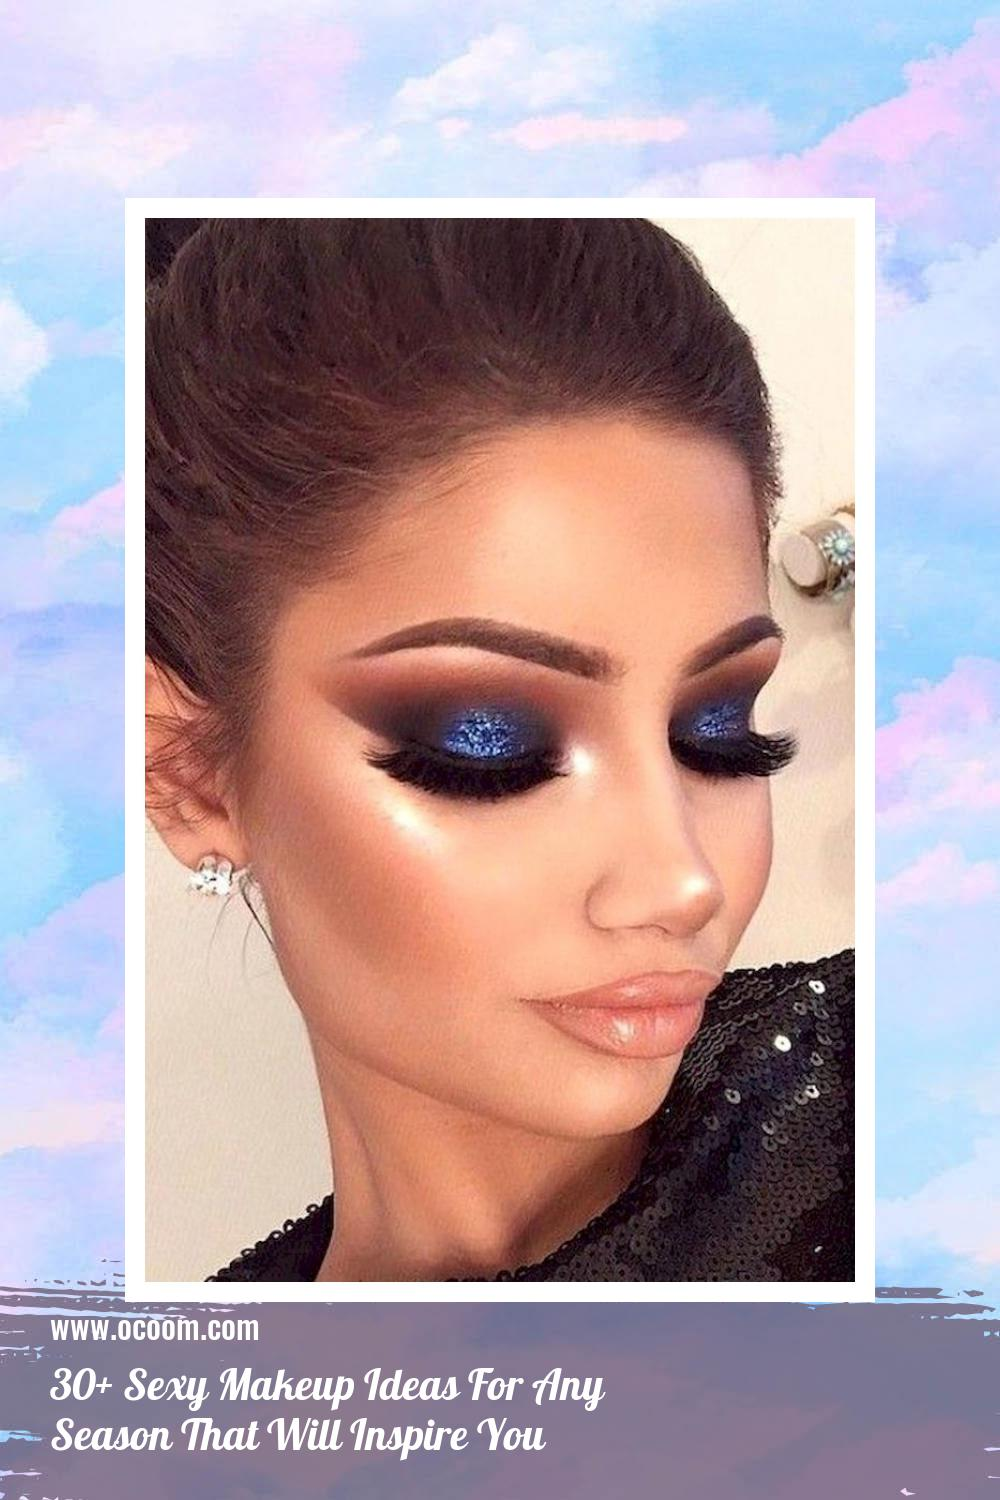 30+ Sexy Makeup Ideas For Any Season That Will Inspire You 3